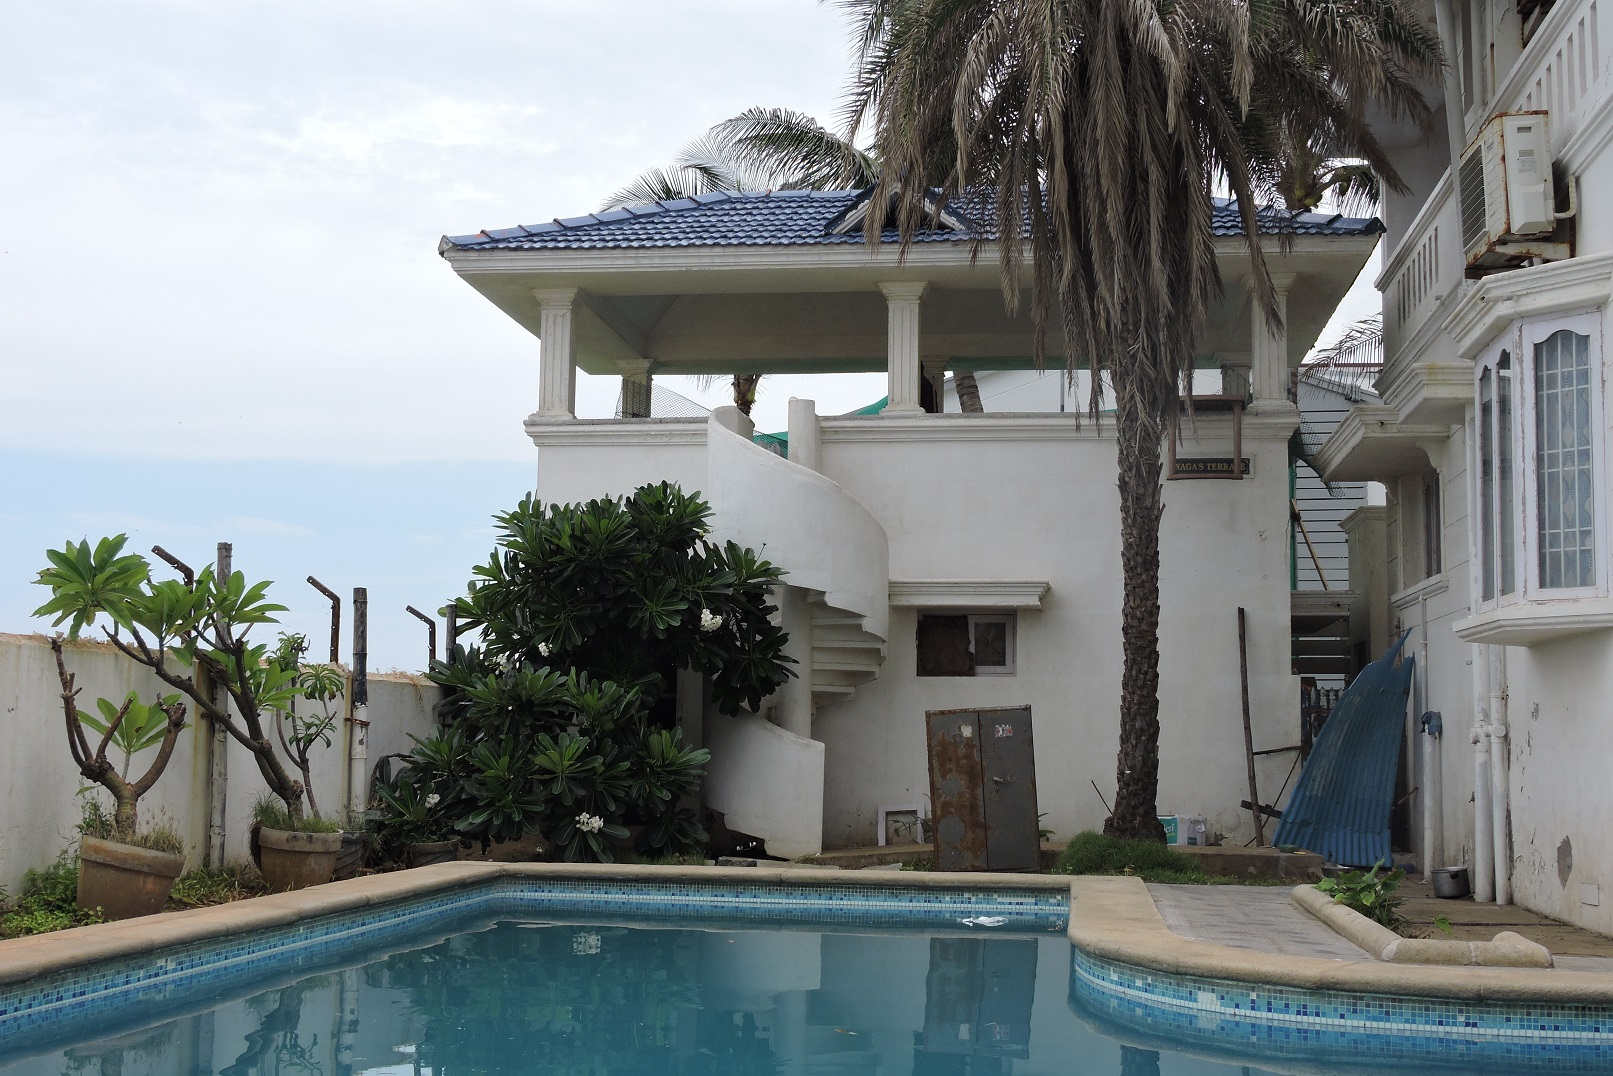 Beach houses for rent with swimming pool in chennai ecr - Resorts in ecr with swimming pool ...